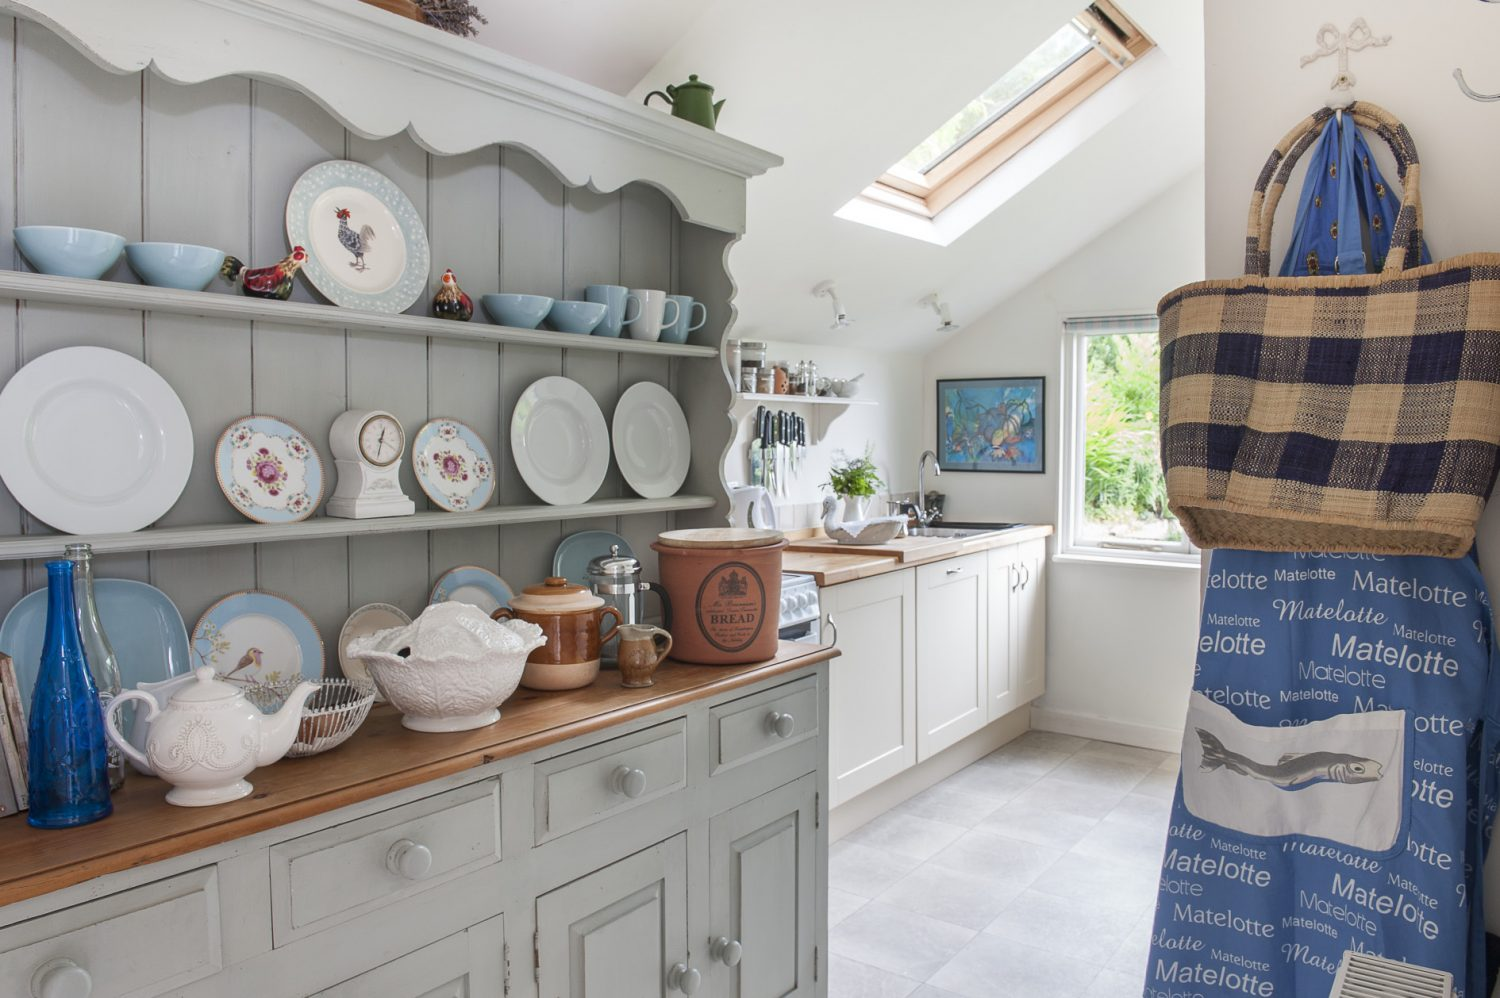 It has been beautifully kitted out with pride of place going to a dresser from Mark Maynard which Patricia has painted in F&B Light Blue